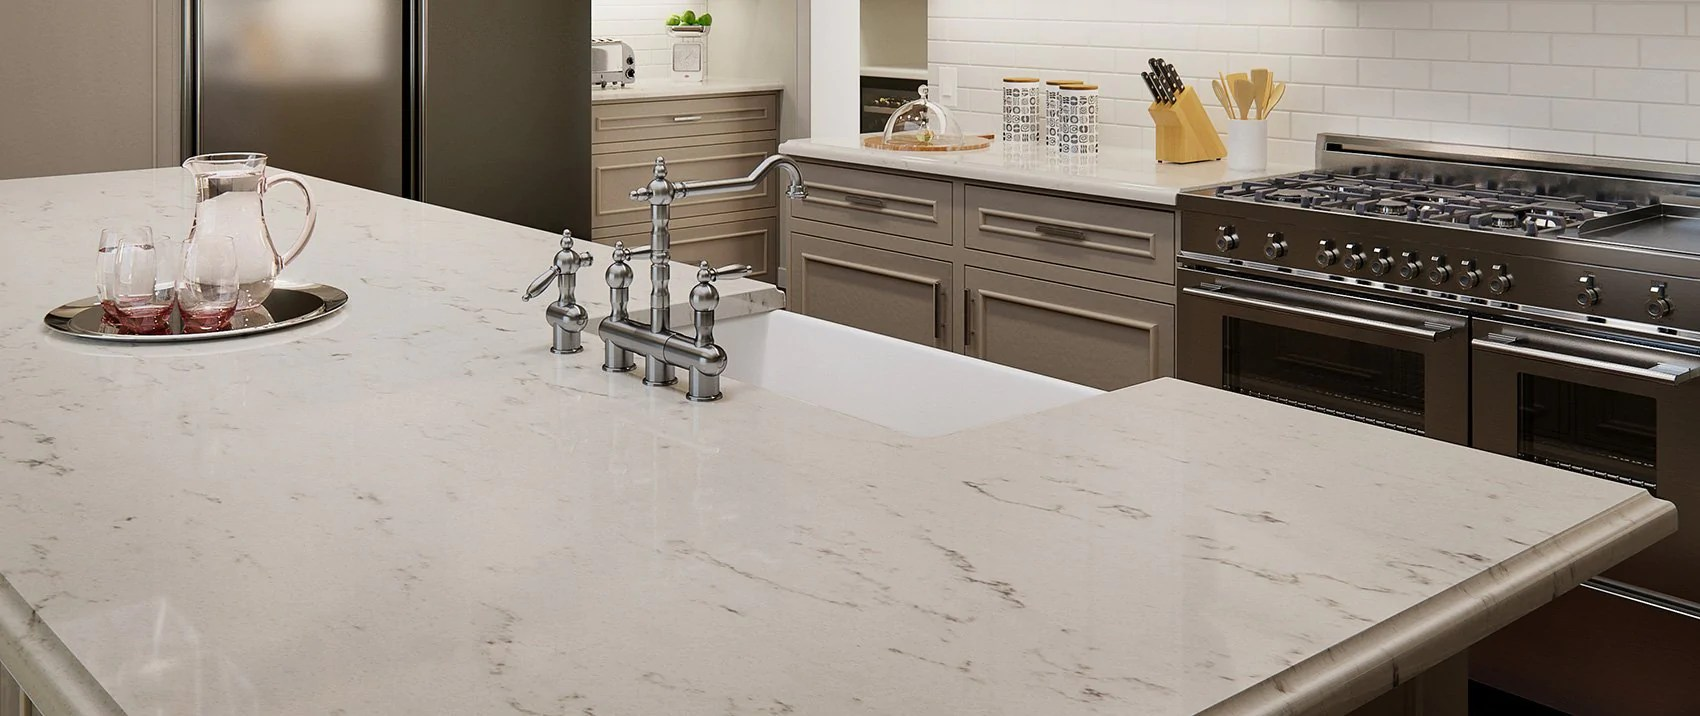 Kitchen Countertop Comparison Chart Allen Roth Countertops Kitchen Bath Remodel And Construction